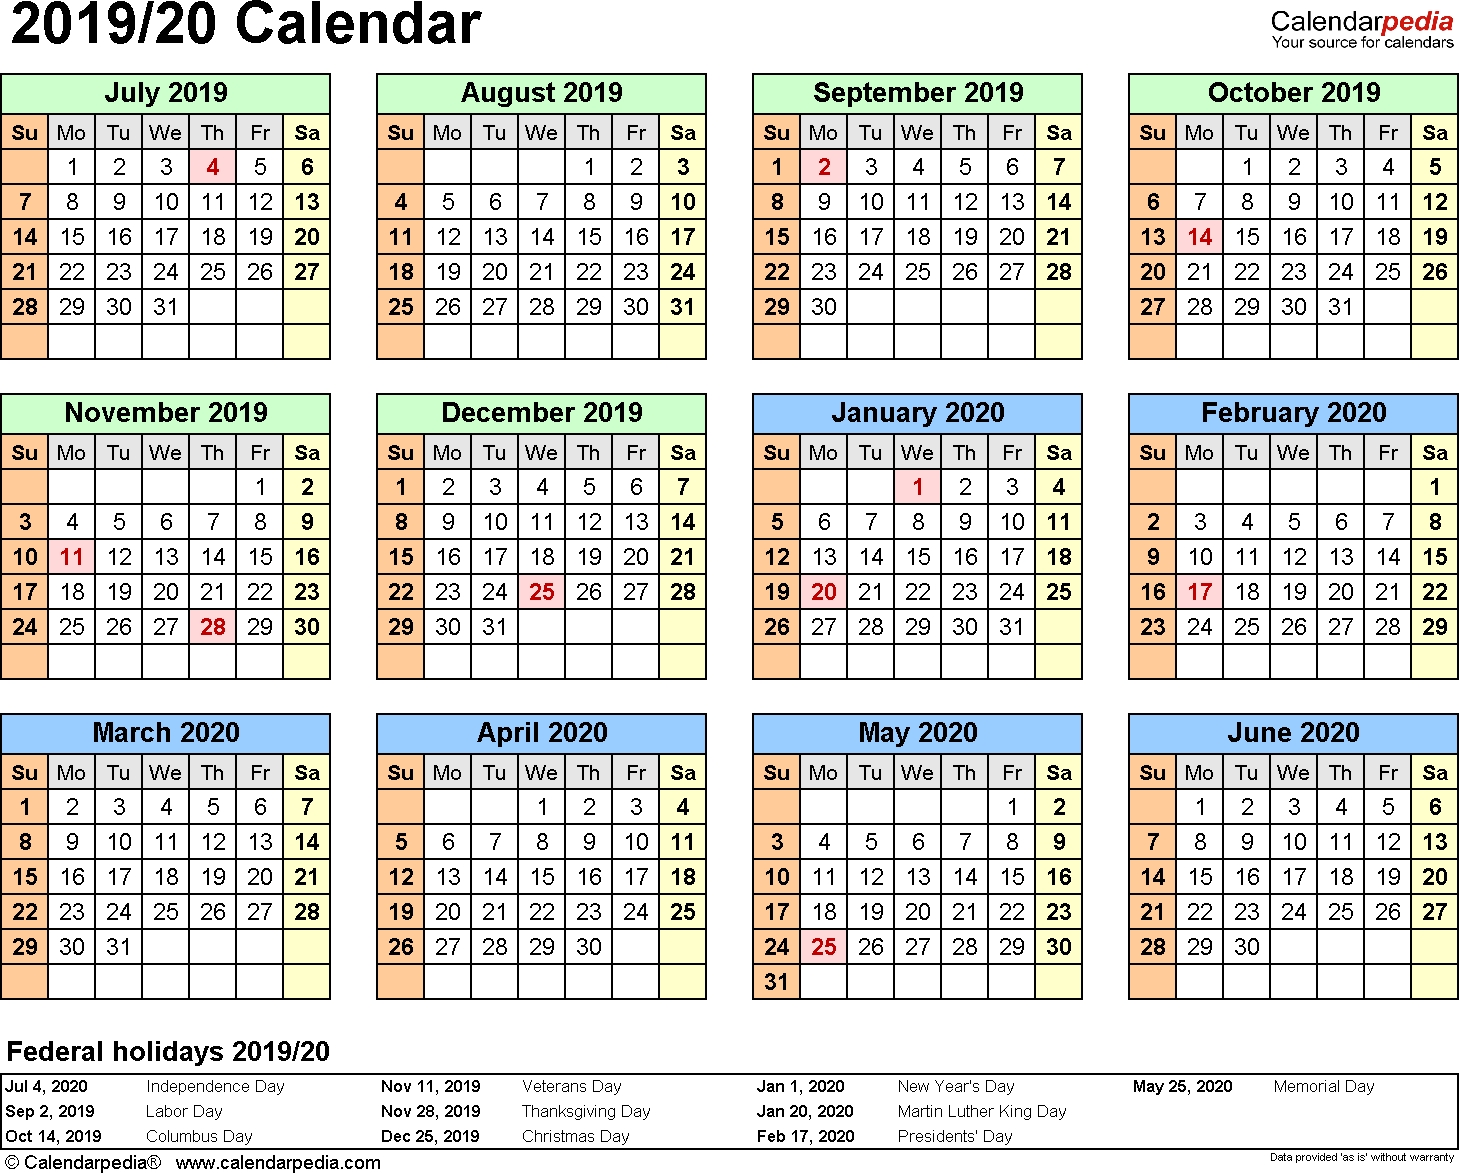 Split Year Calendar 2019/20 (July To June) - Pdf Templates intended for Tax Year Calendar 2019 2020